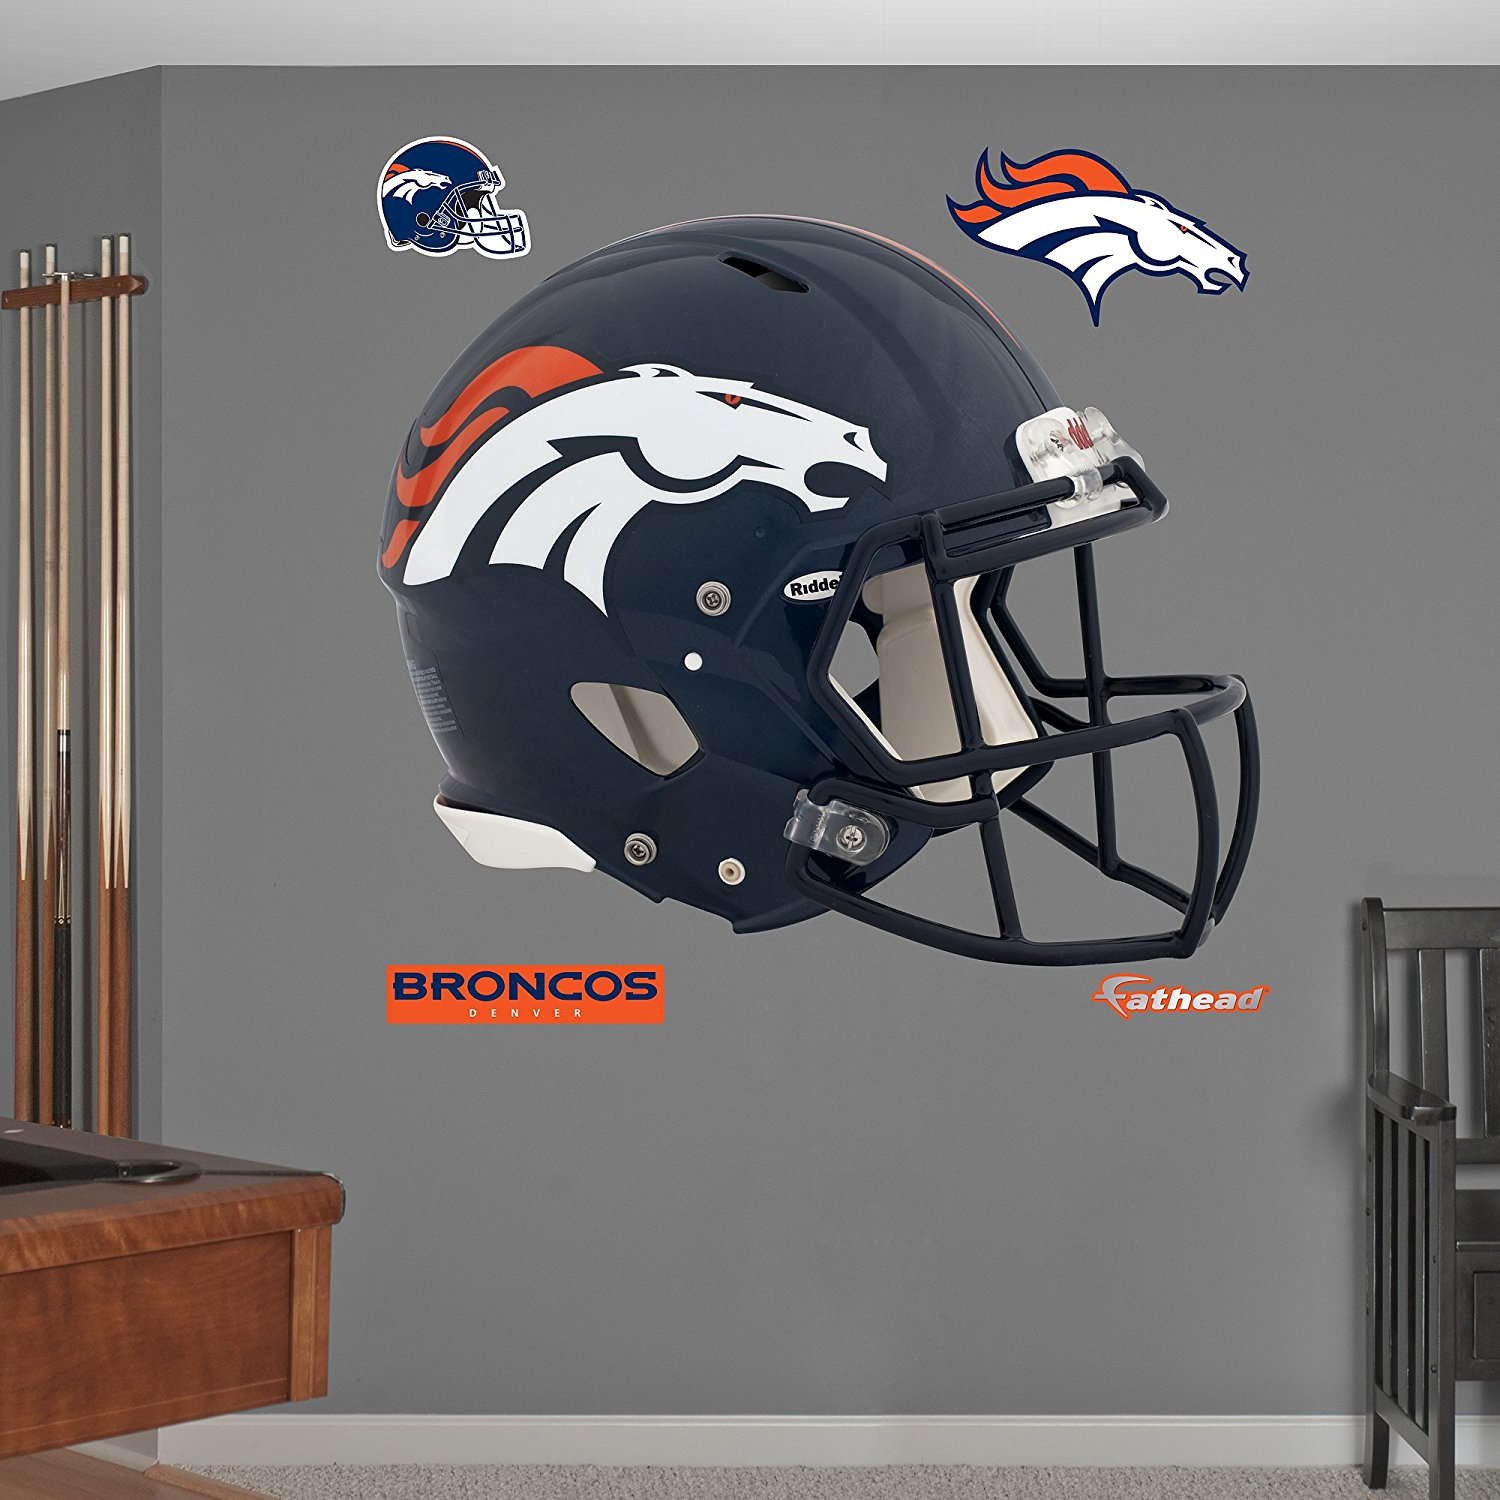 bd7addfcc Buy Fathead NFL Revolution Helmet Wall Decal in Cheap Price on ...